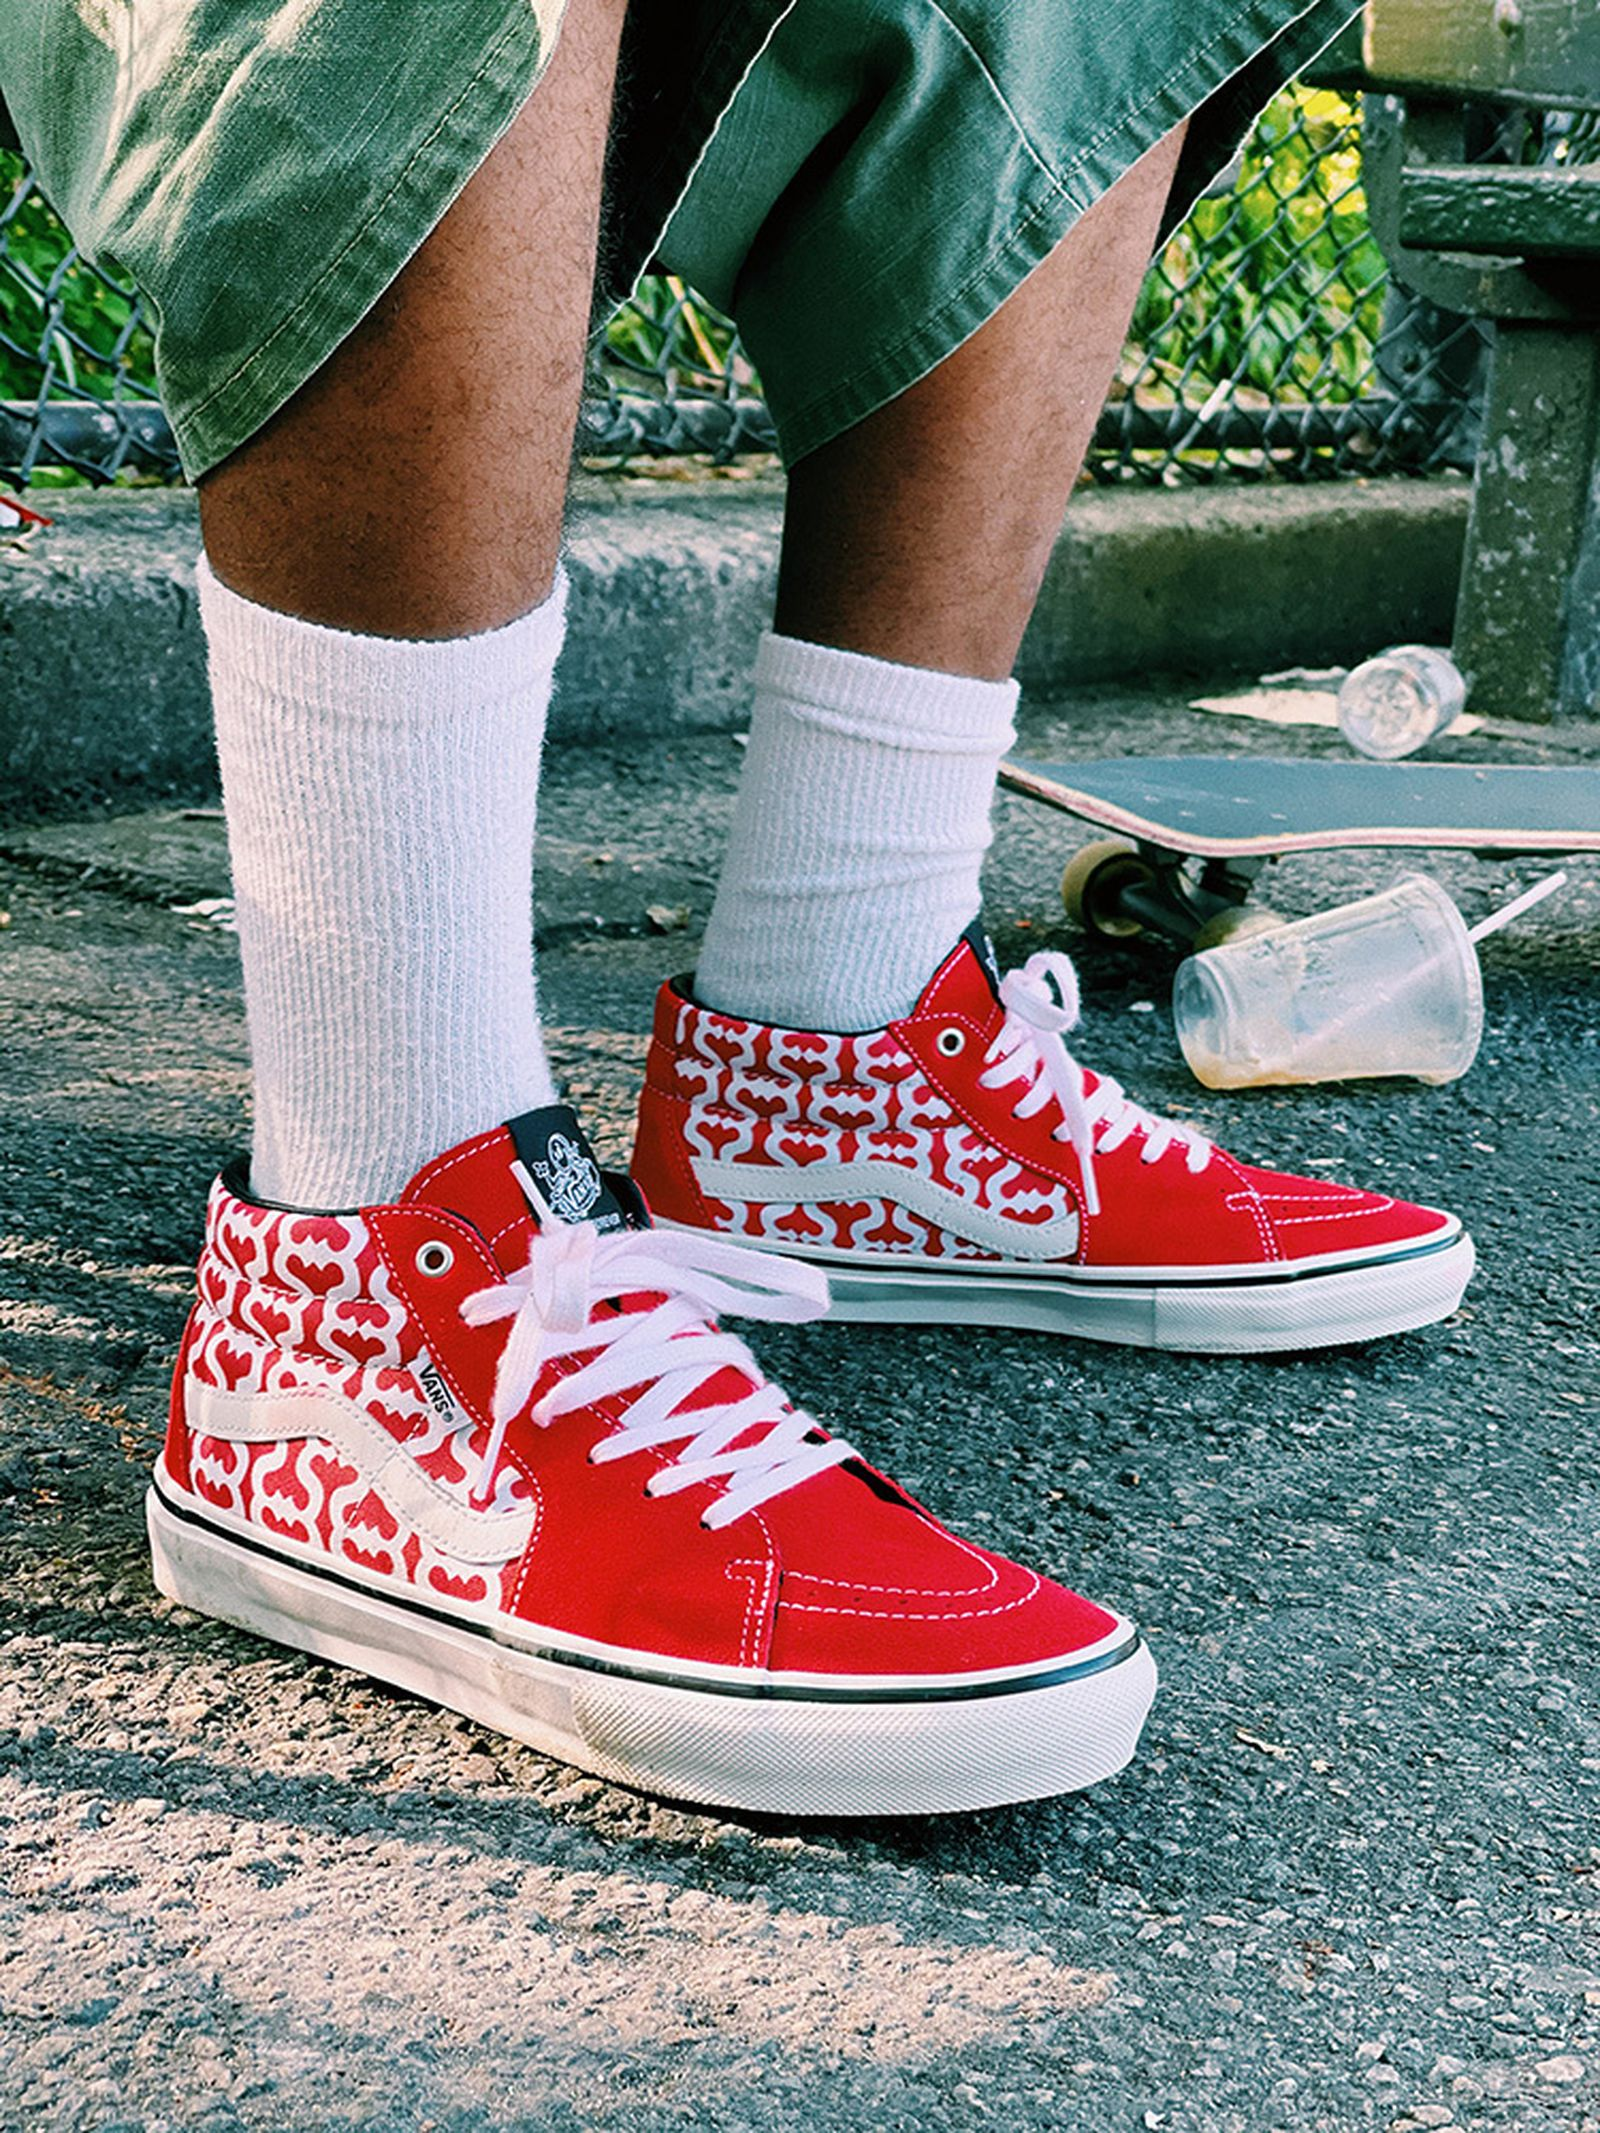 supreme-vans-ss21-release-date-price-01